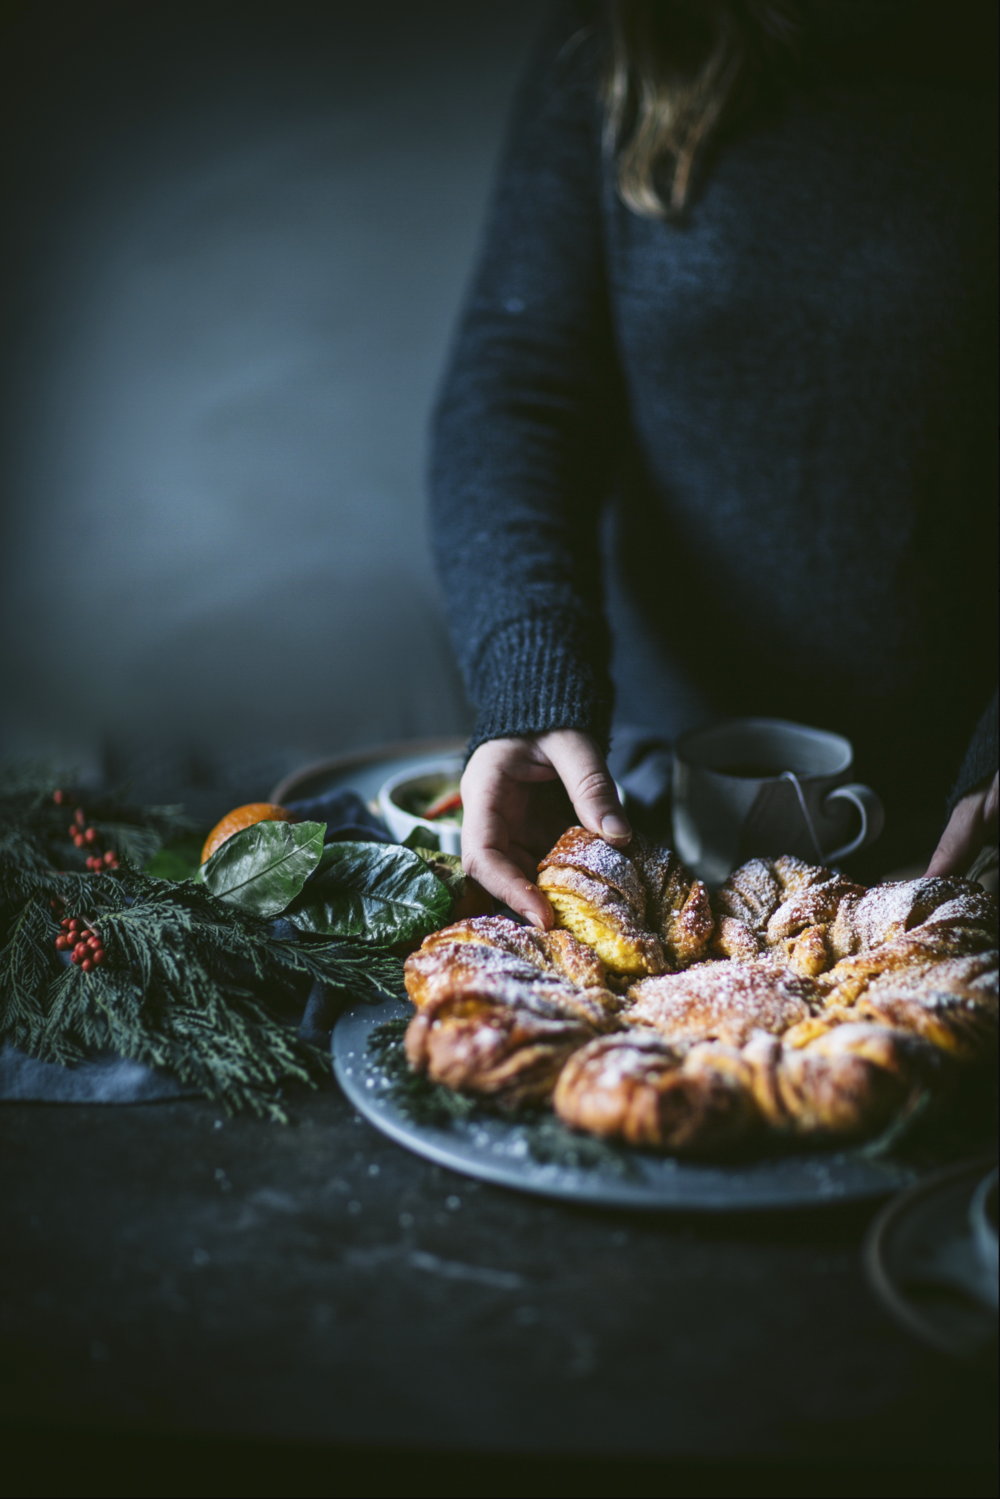 The Best Food Photography Lightroom Presets